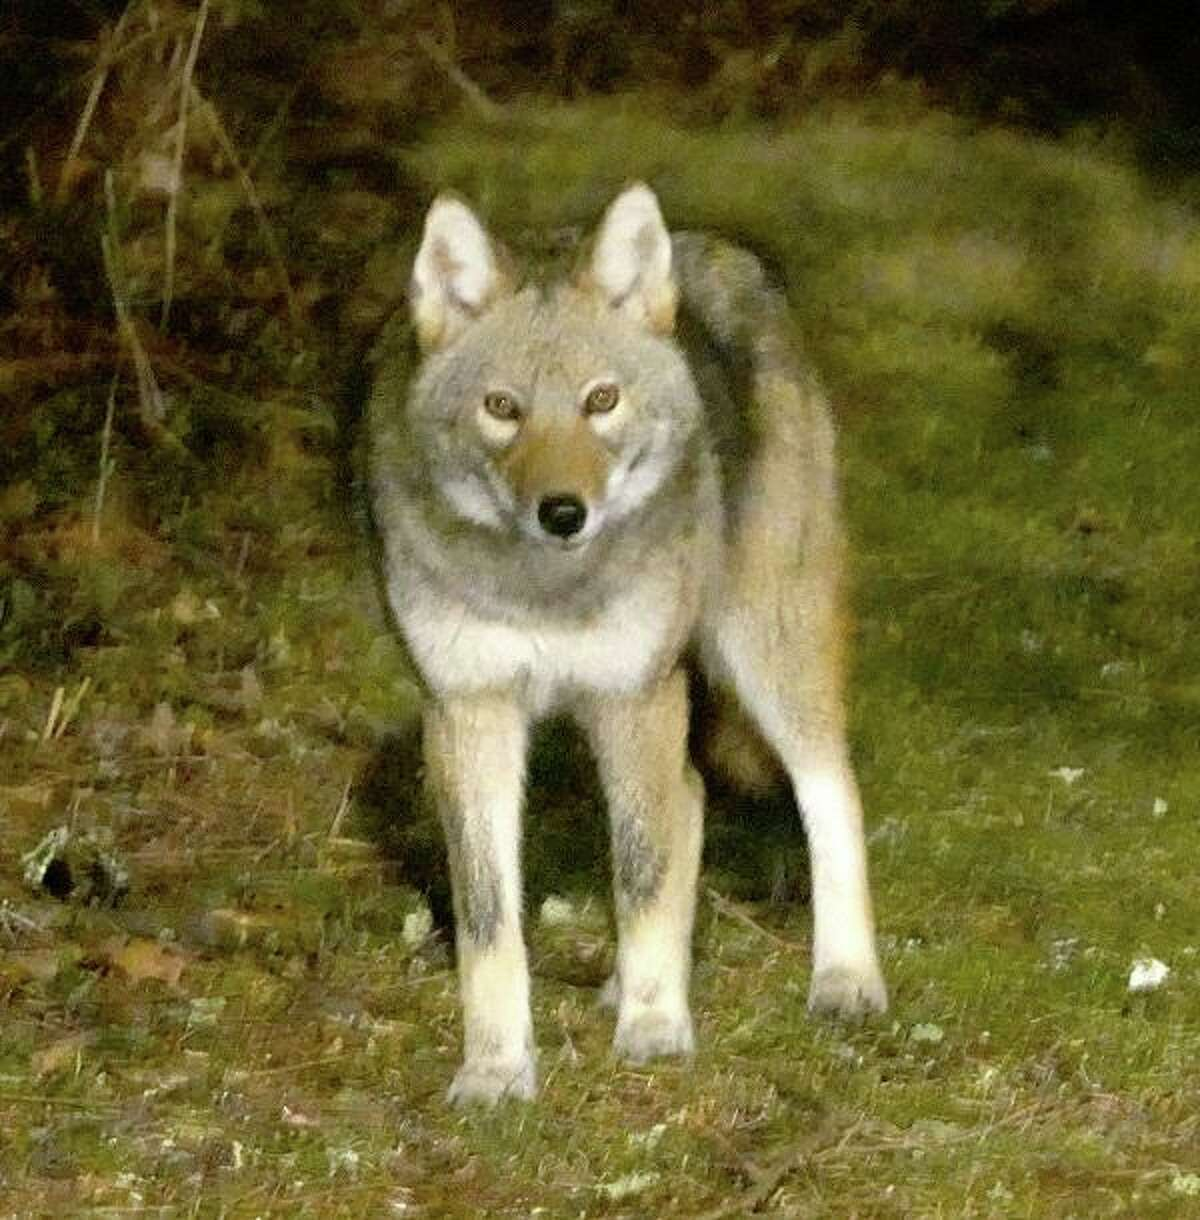 The coyote is often described as an opportunistic animal.